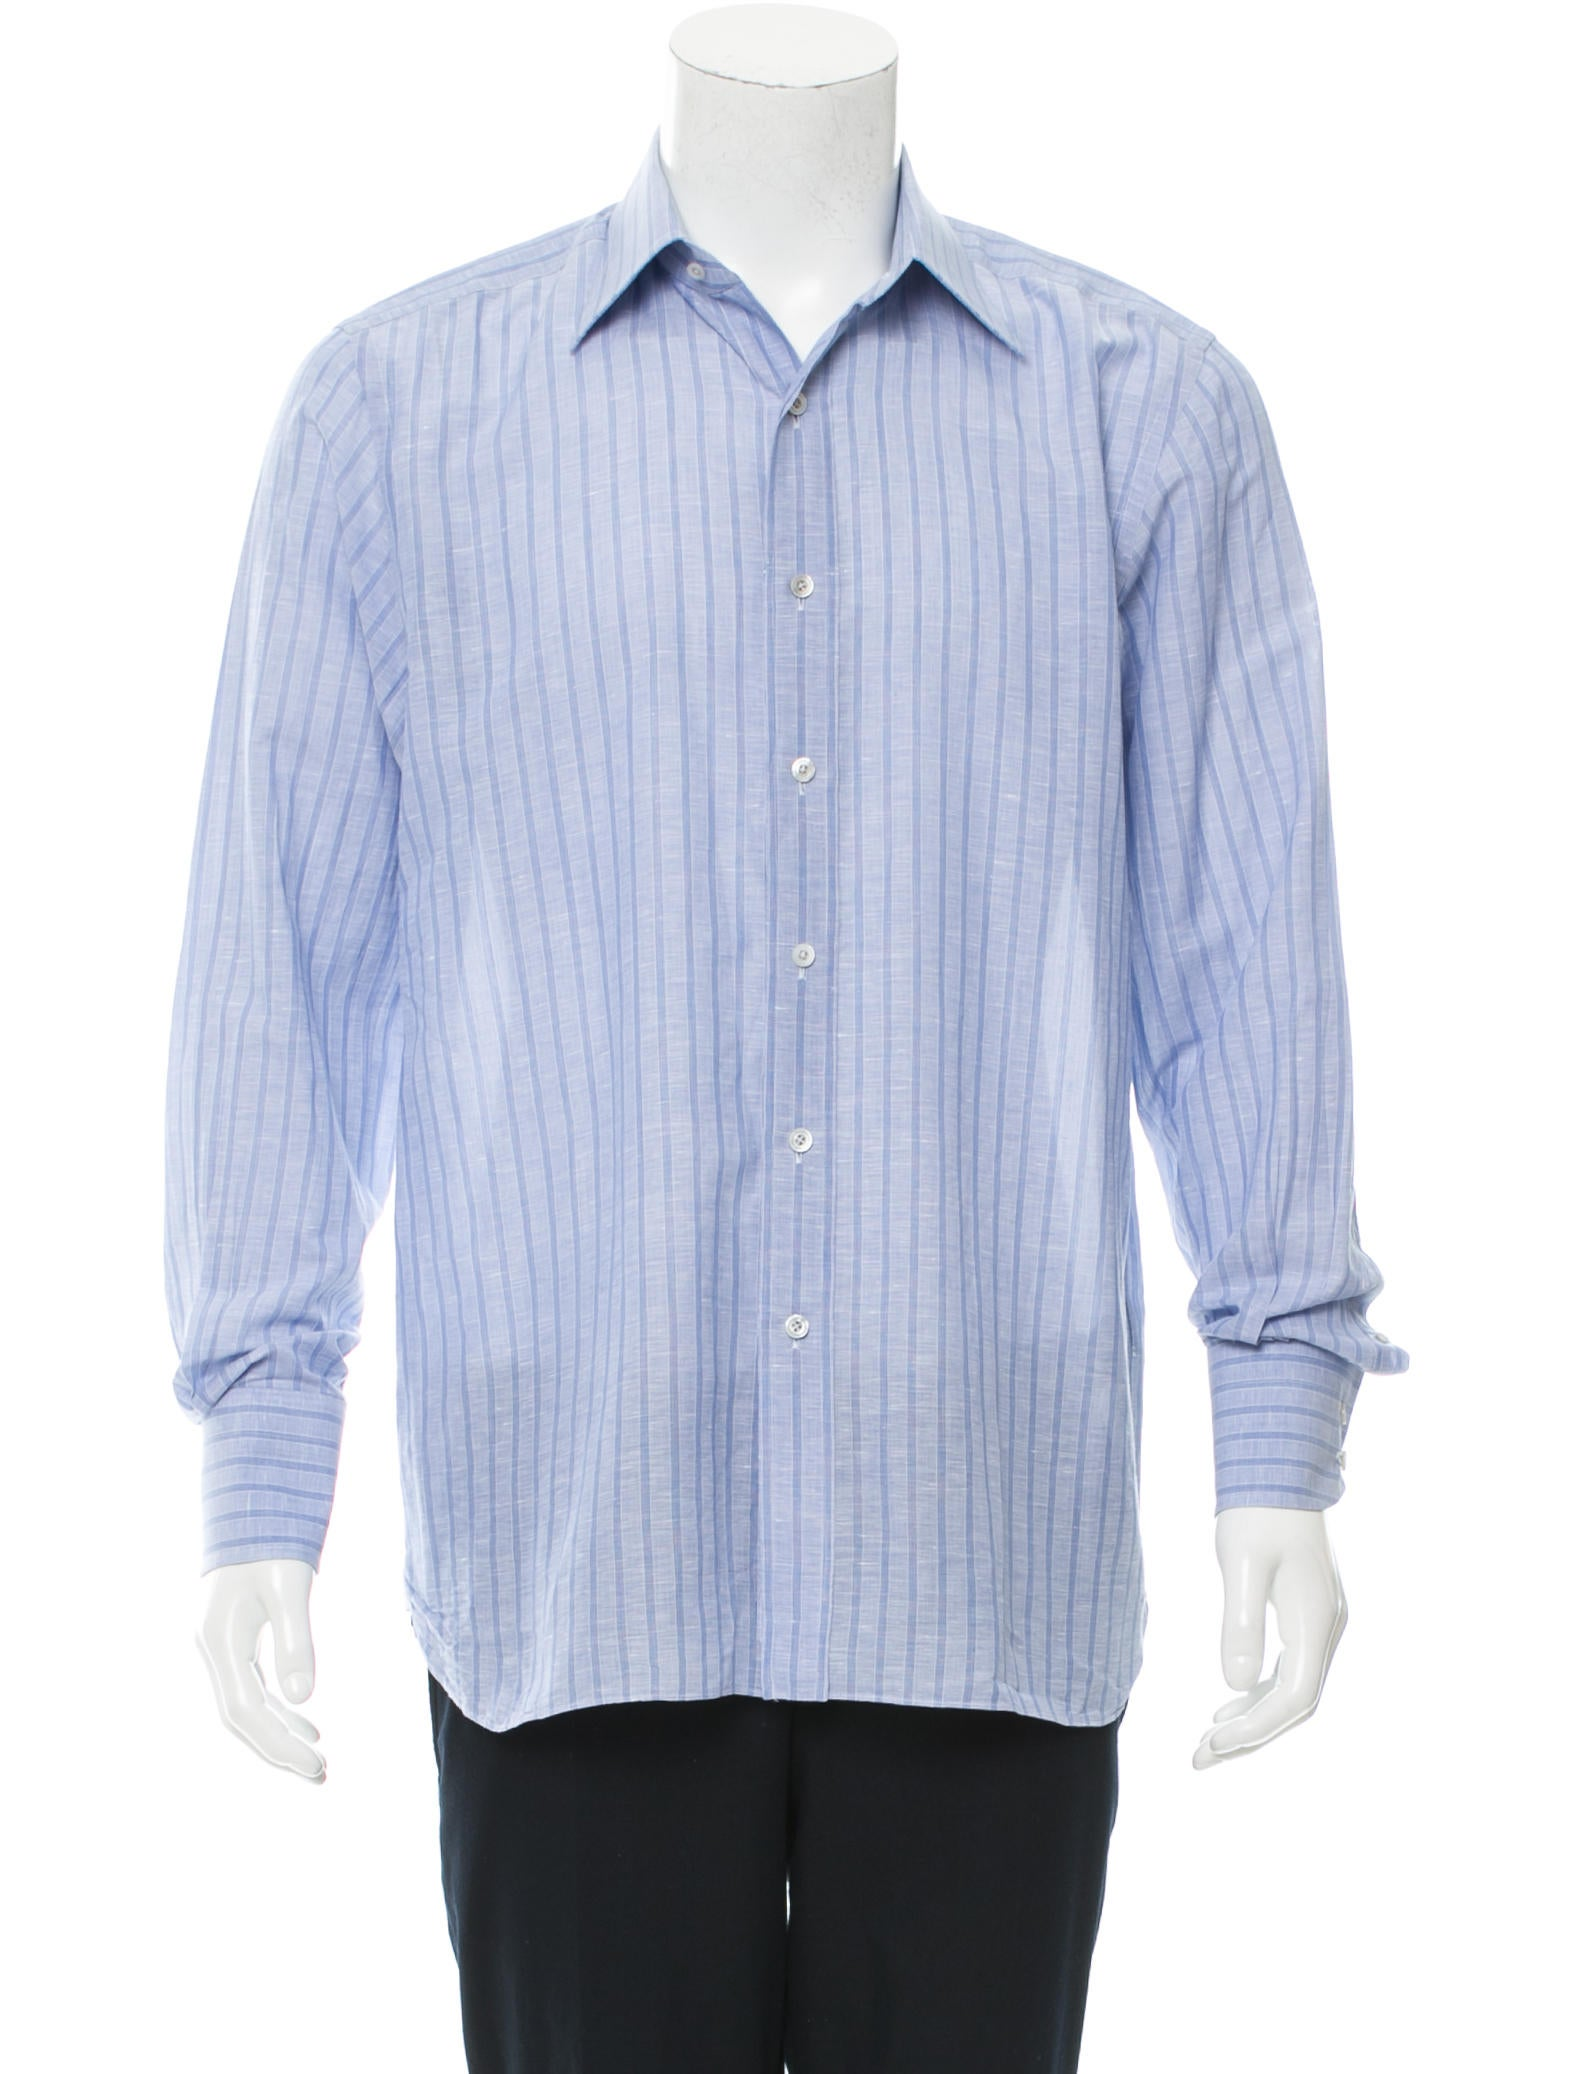 Tom ford striped button up shirt clothing tom35053 for Striped button up shirt mens